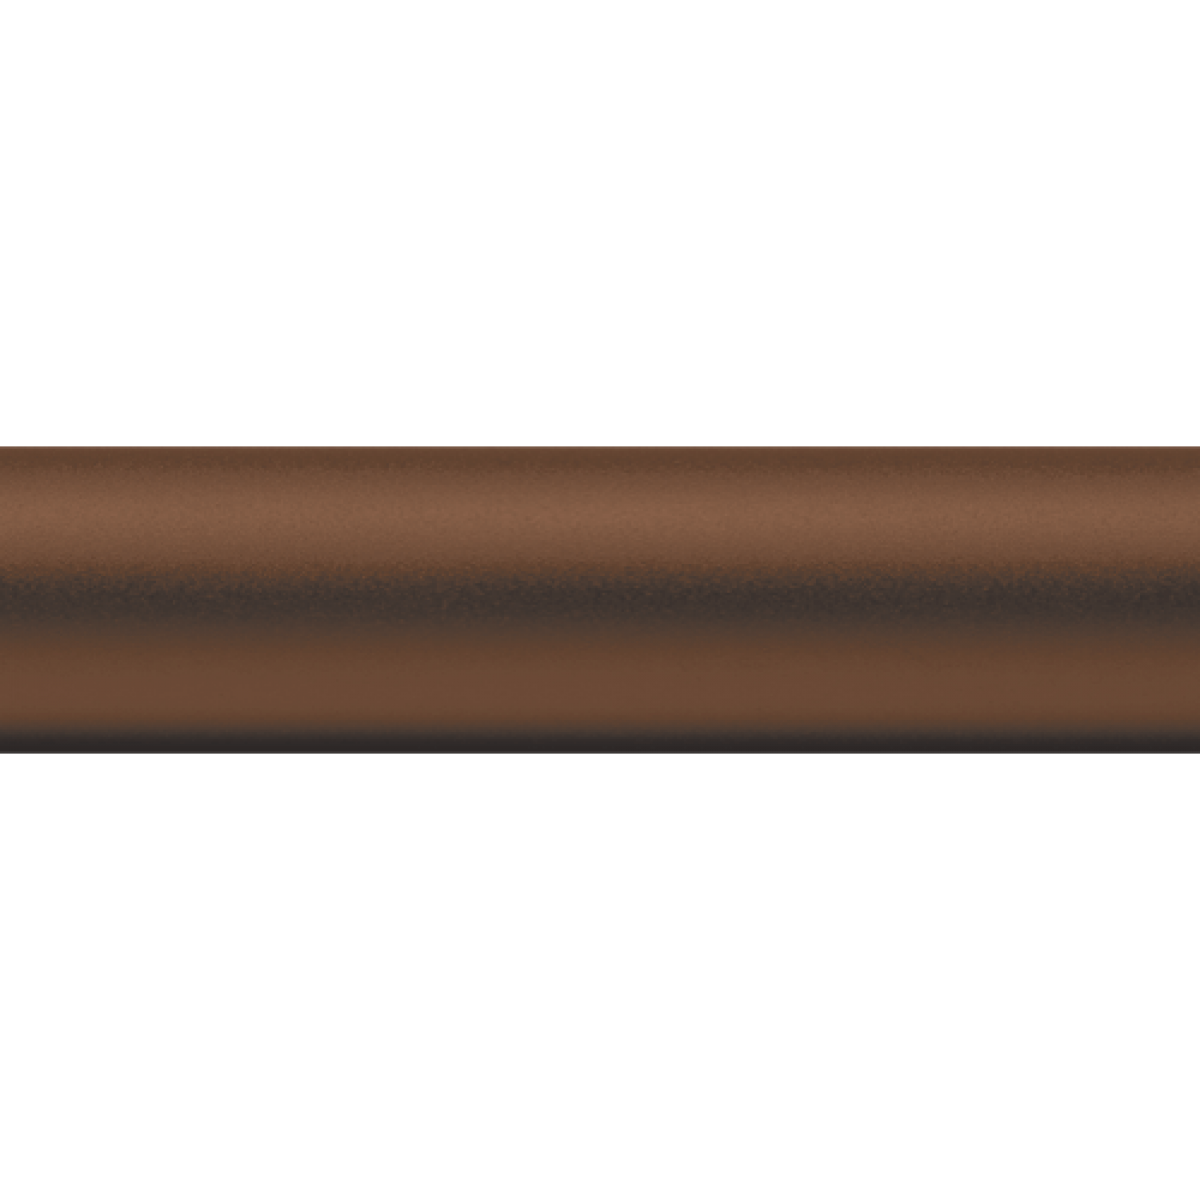 Sample Baton Base Color - Matte Brown